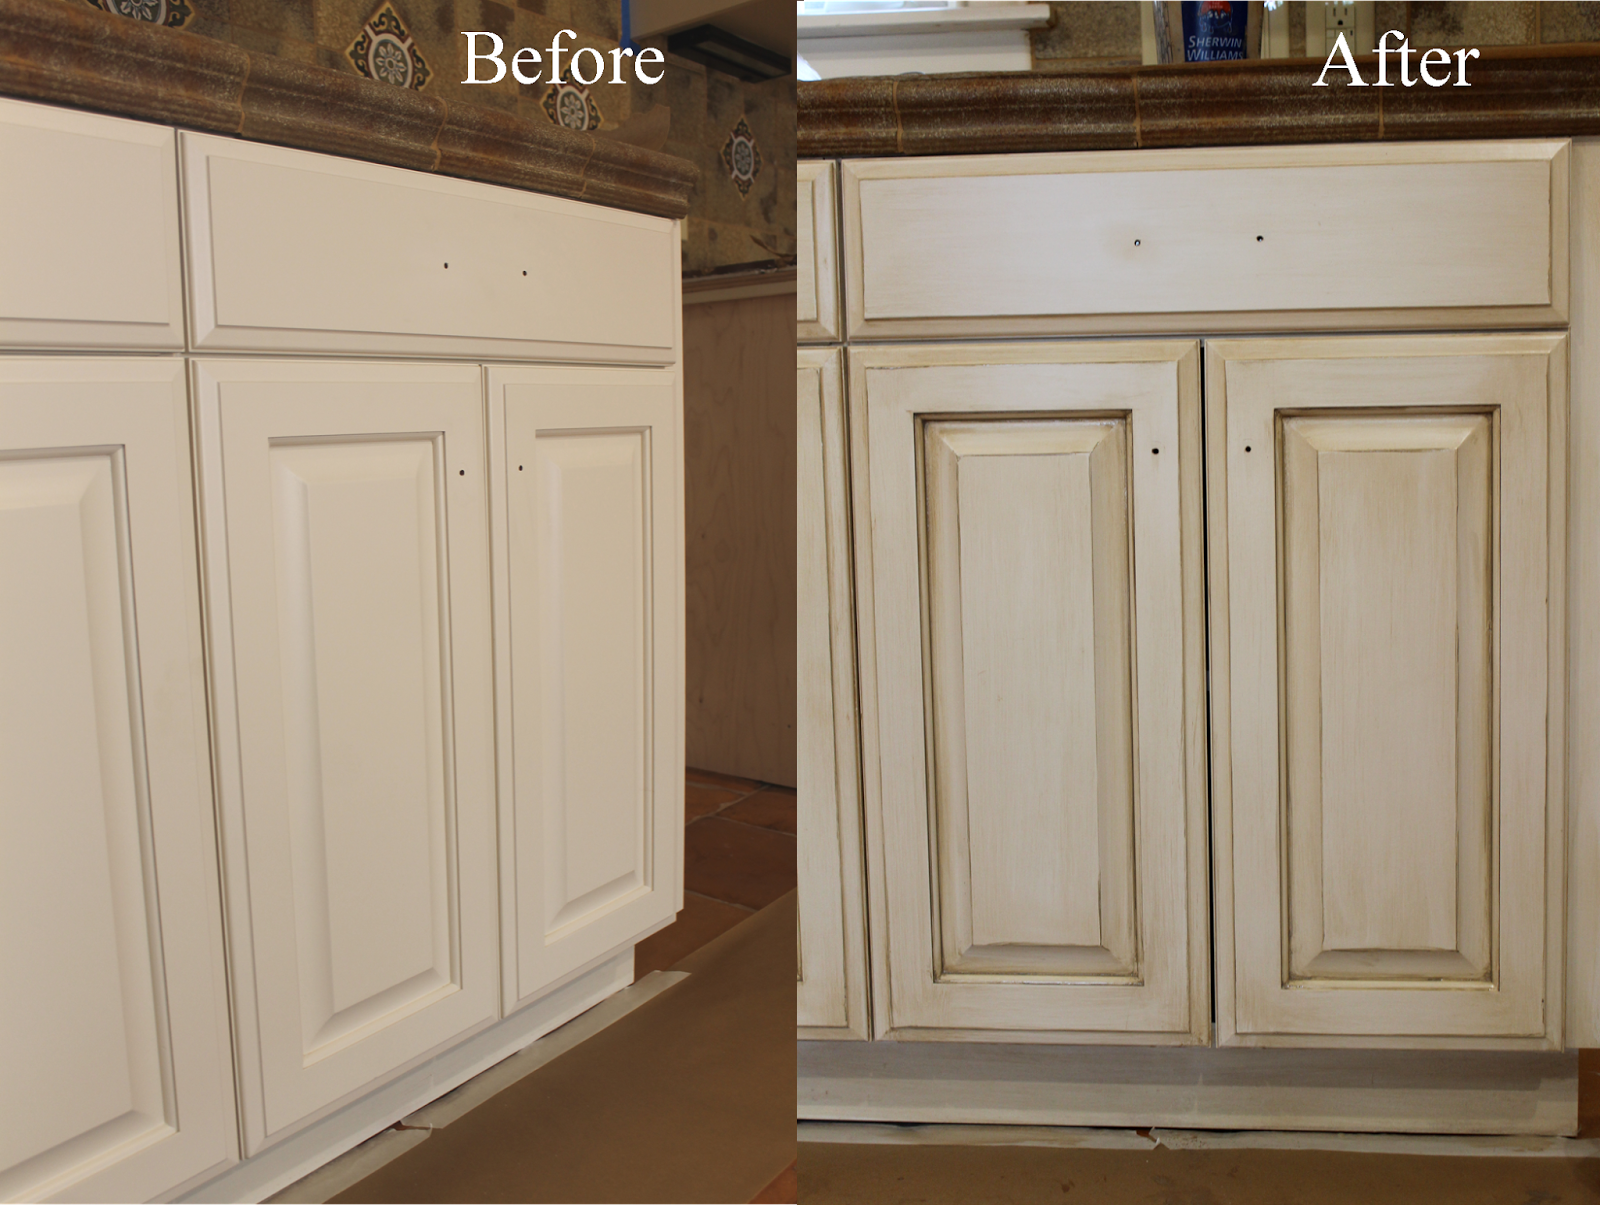 Before and after glazing antiquing cabinets a complete Pictures of painted cabinets